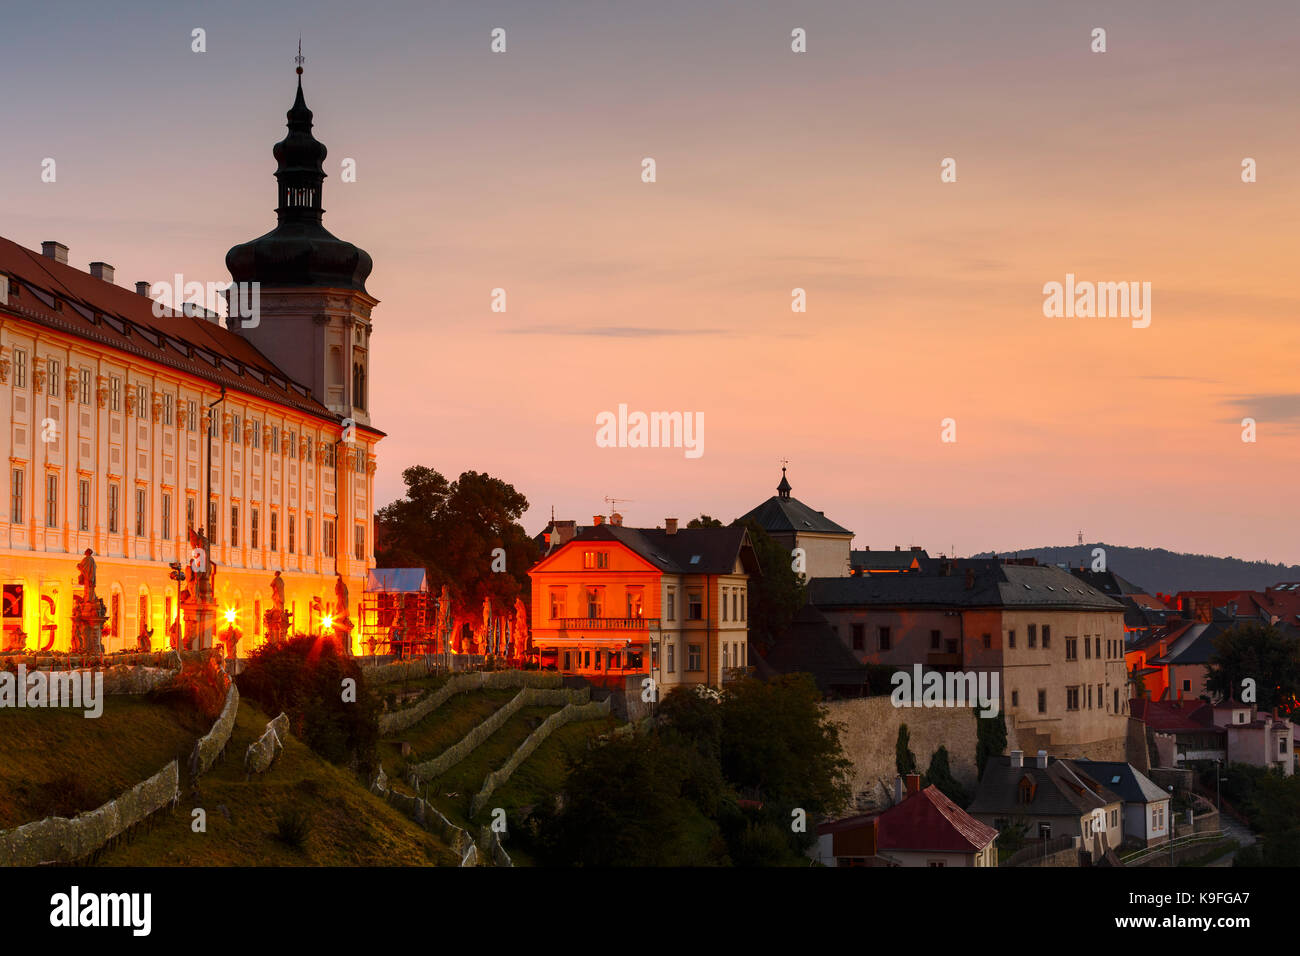 Jesuit collage and the old town of Kutna Hora. - Stock Image